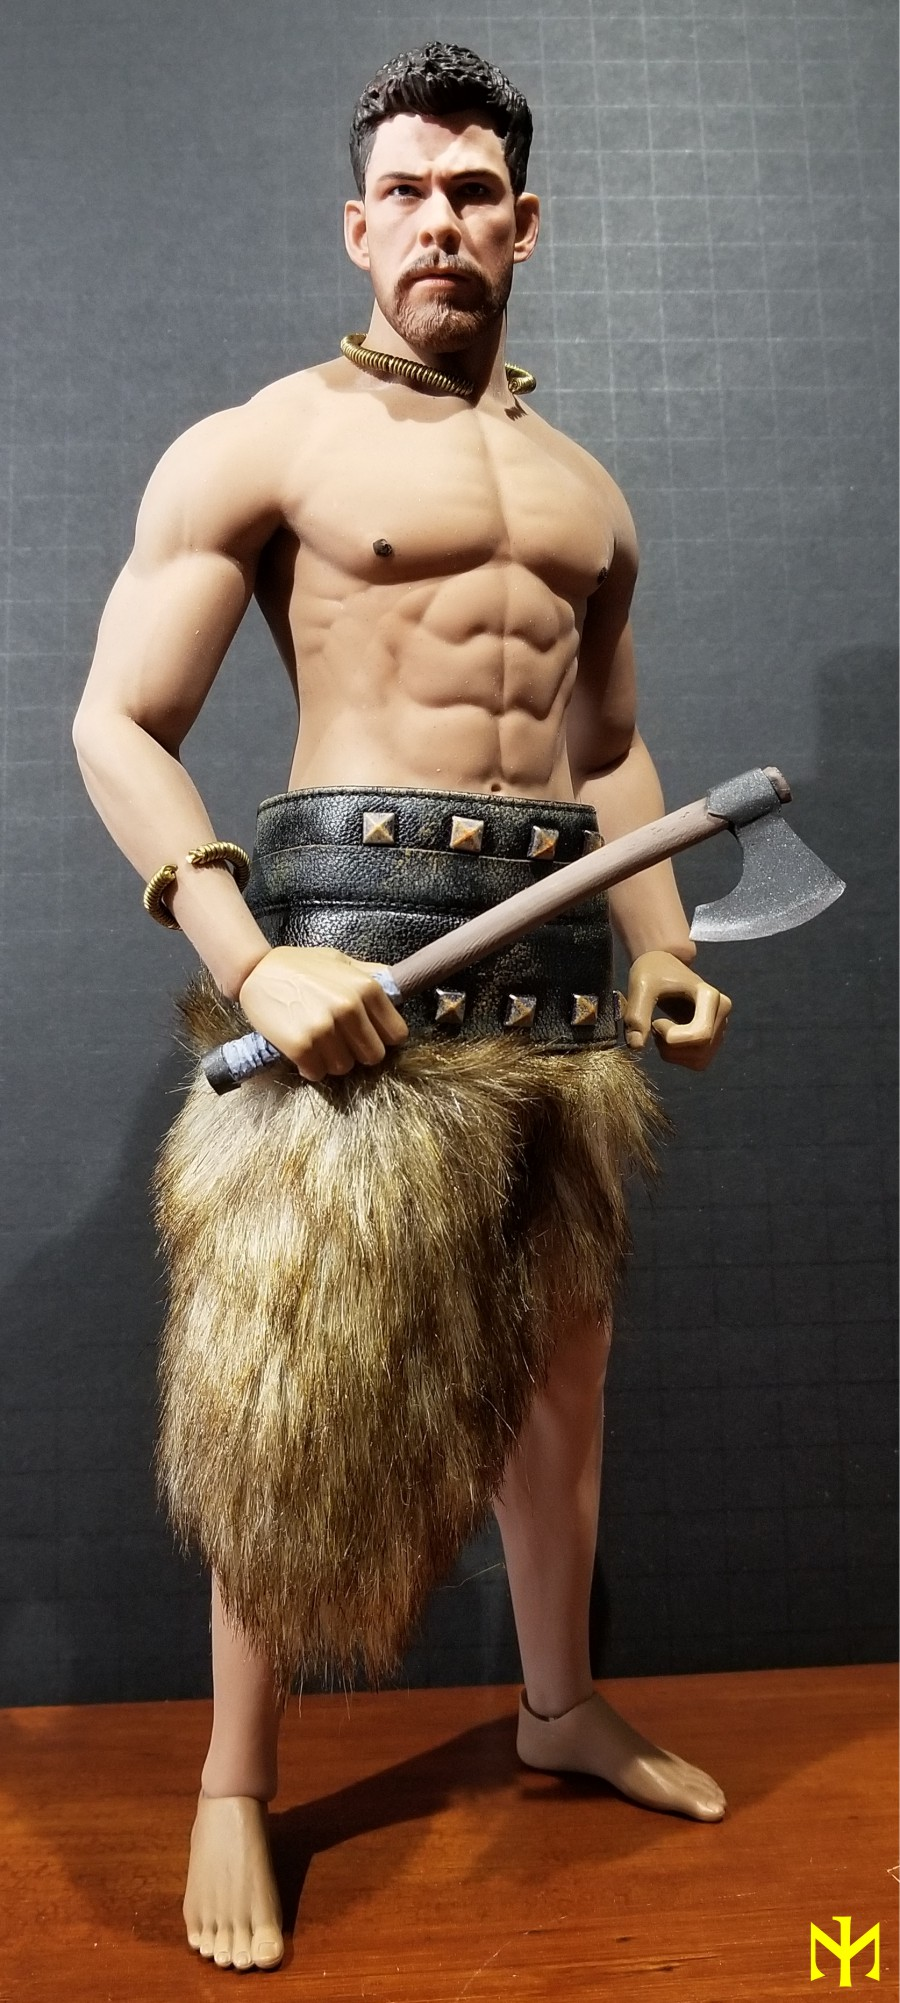 Conanesque: A Fantasy Warrior Kitbash (update 5: February 2020) Viking54